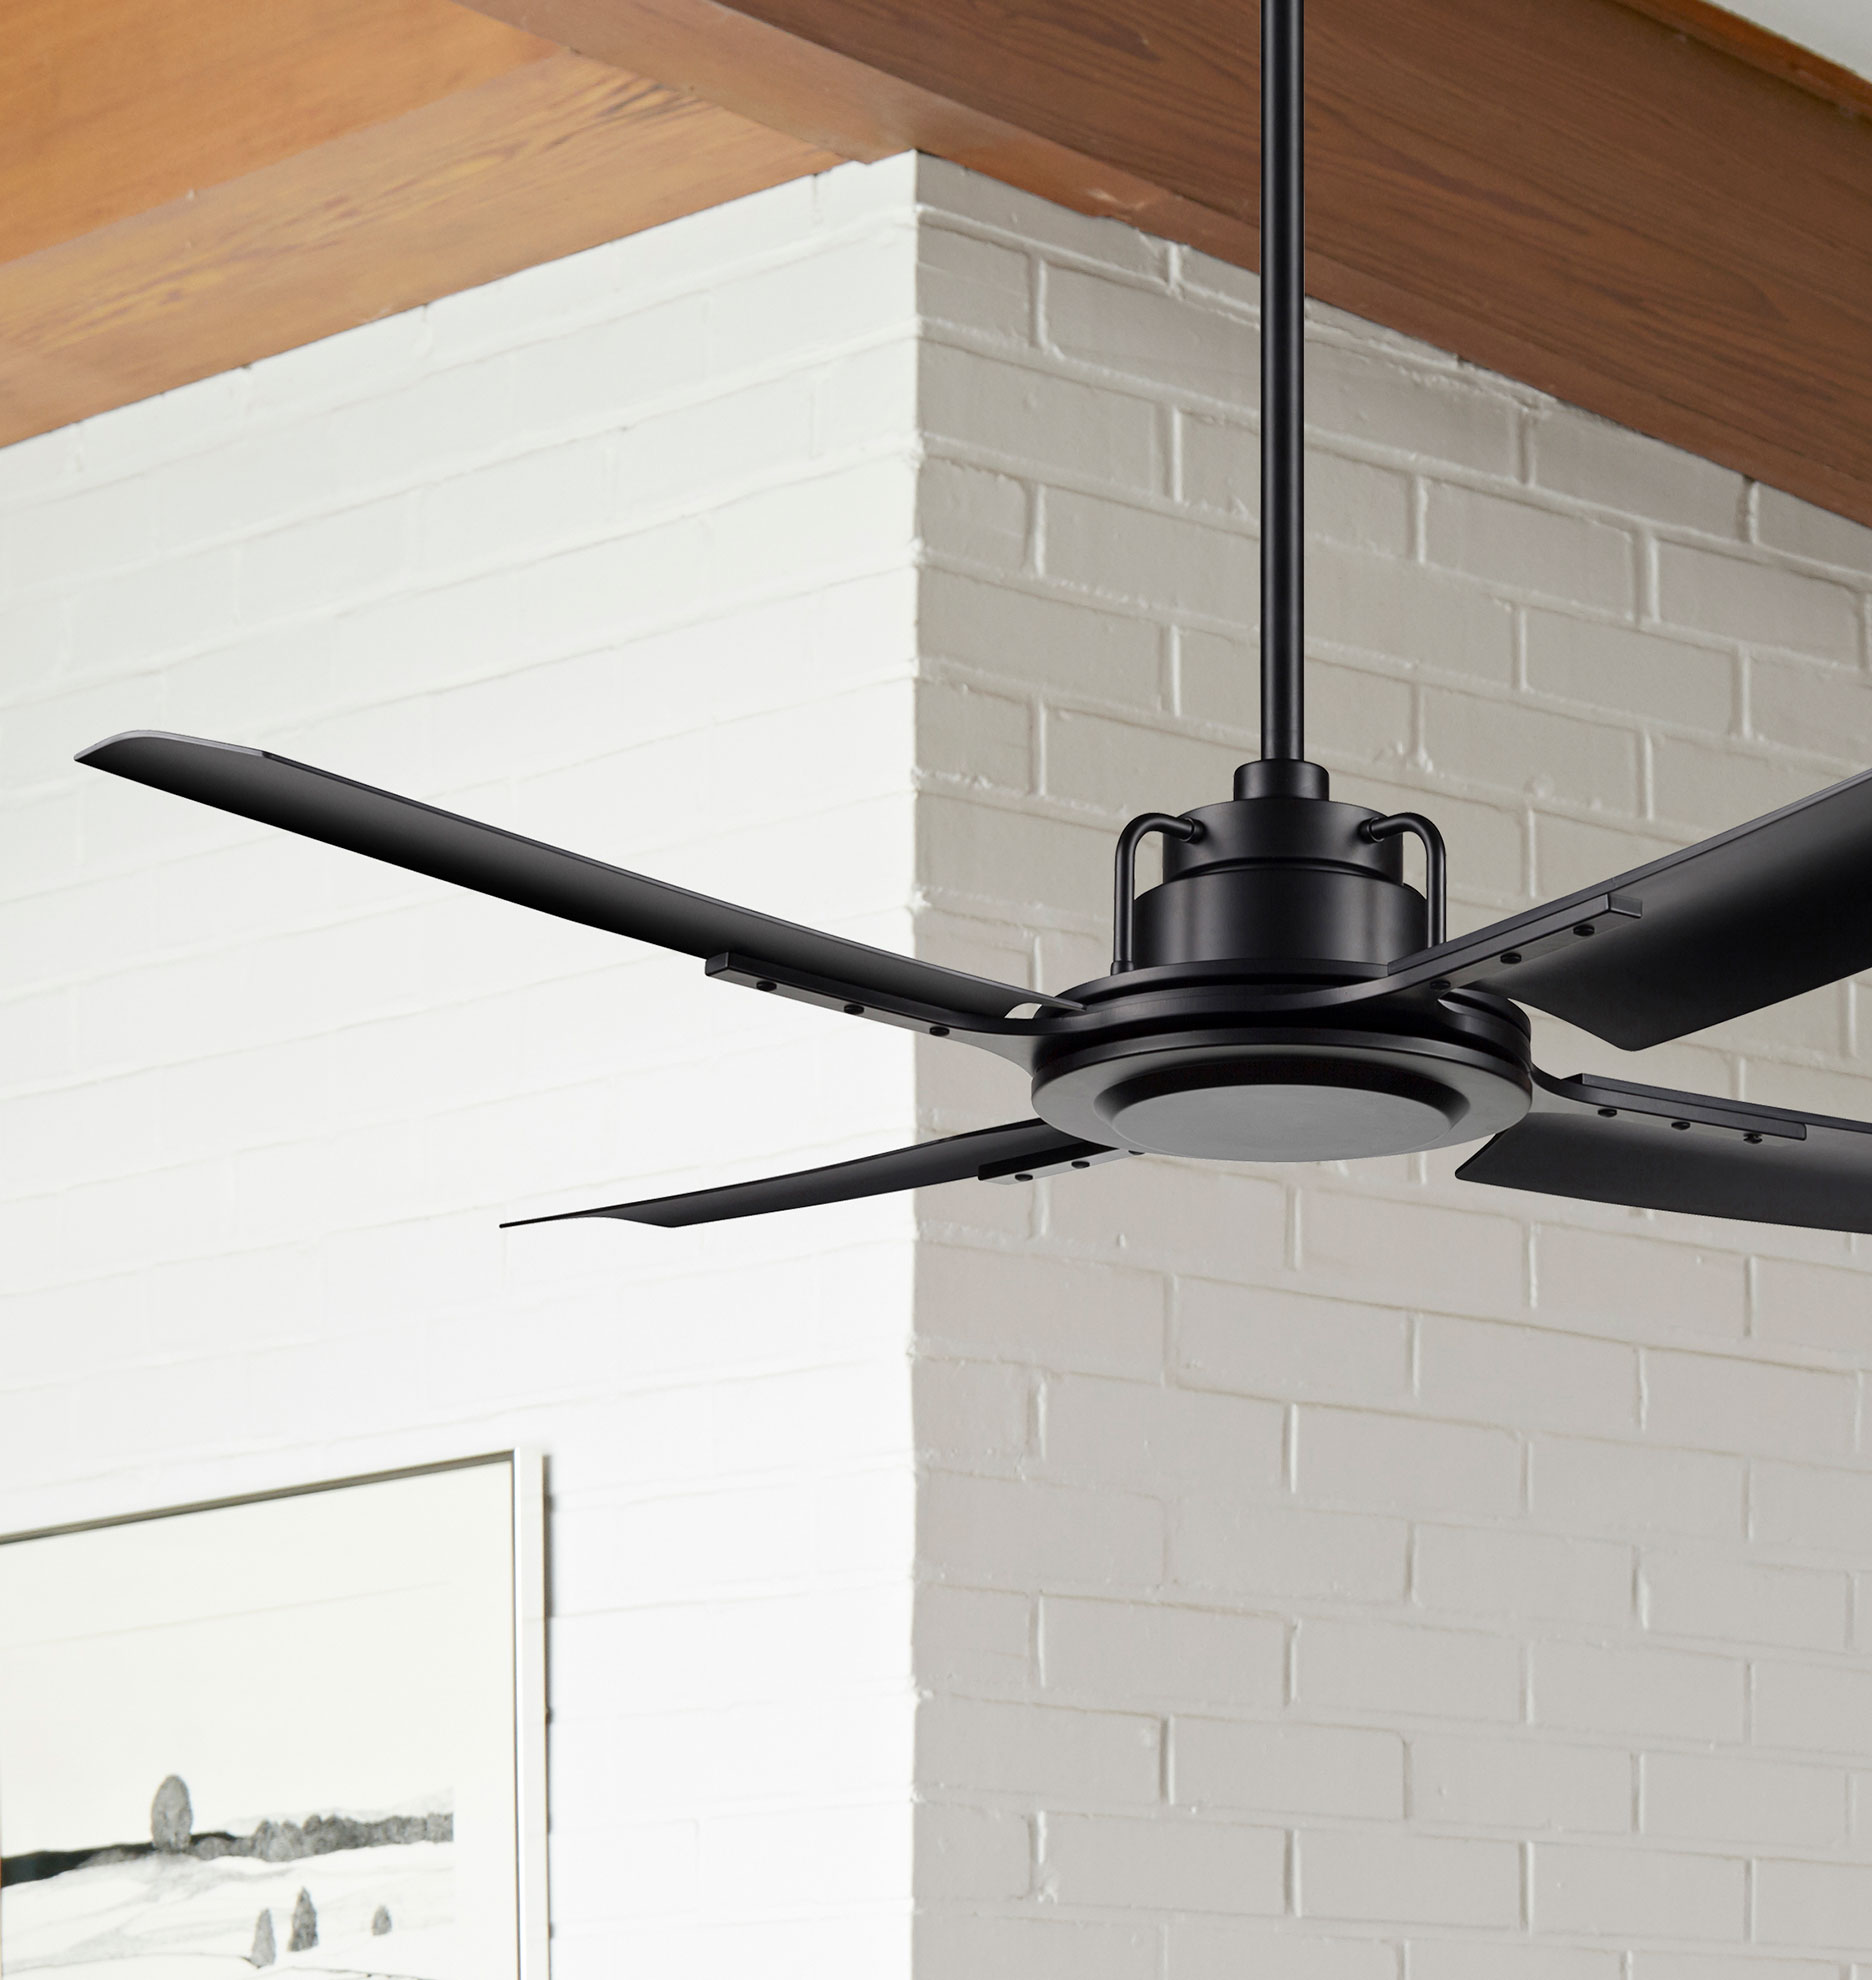 Peregrine Industrial Ceiling Fan No Light 4 Blade Ceiling Fan